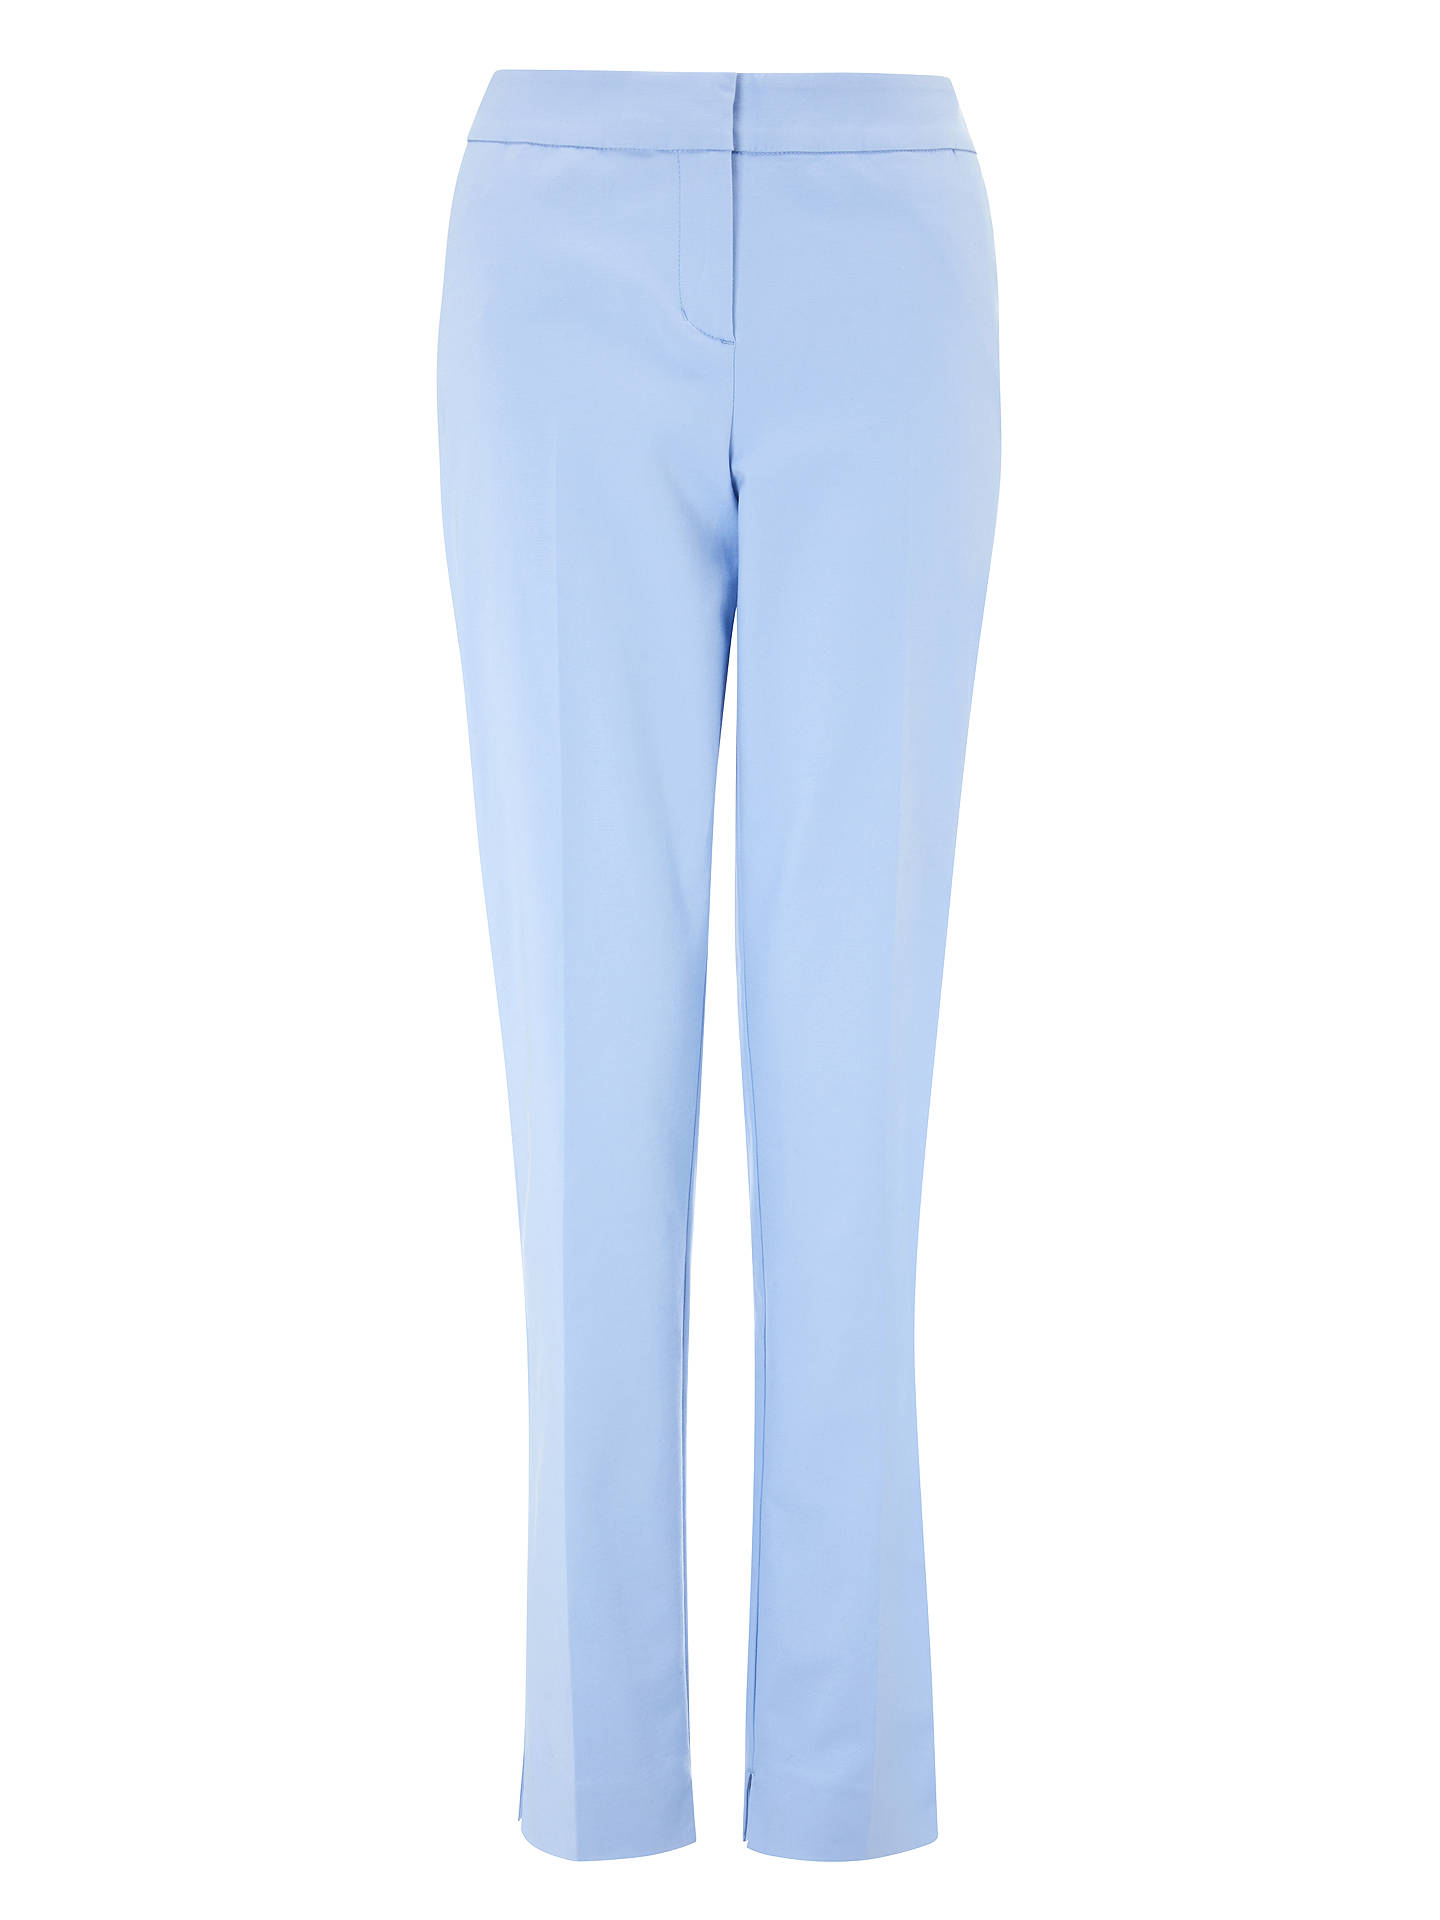 BuyBoden Richmond Trousers, Hazy Blue, 8 Online at johnlewis.com